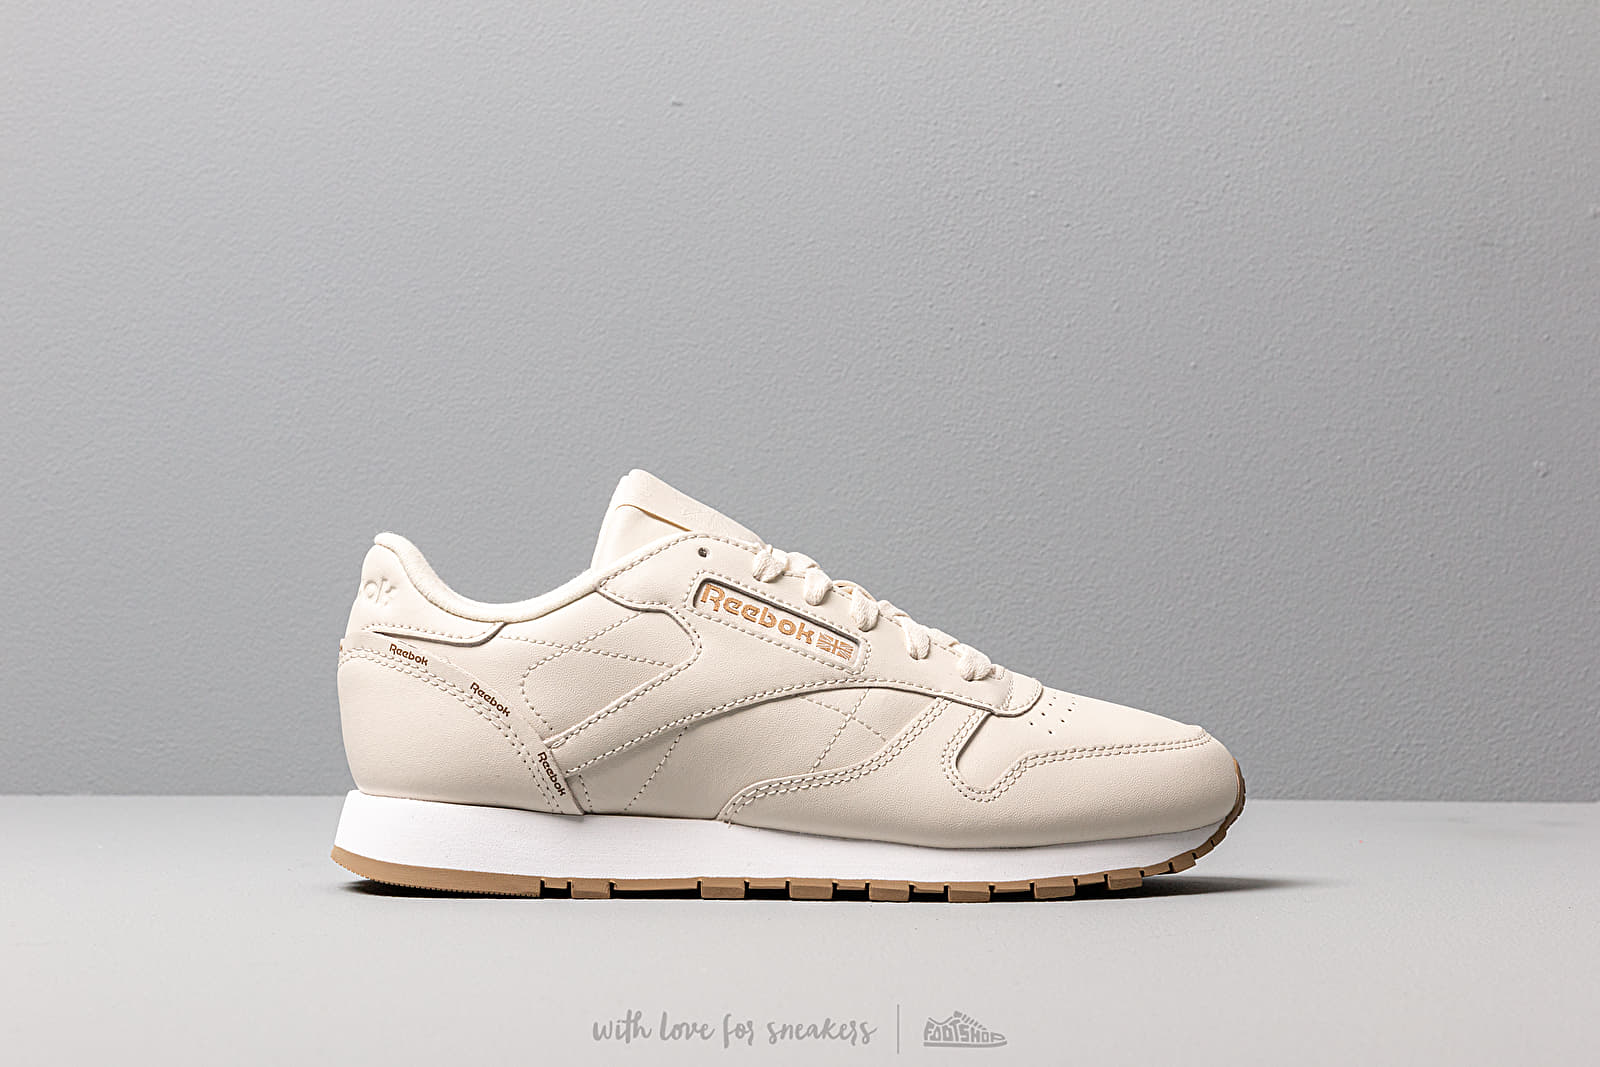 Reebok Classic Leather Alabaster Thatch White | Footshop